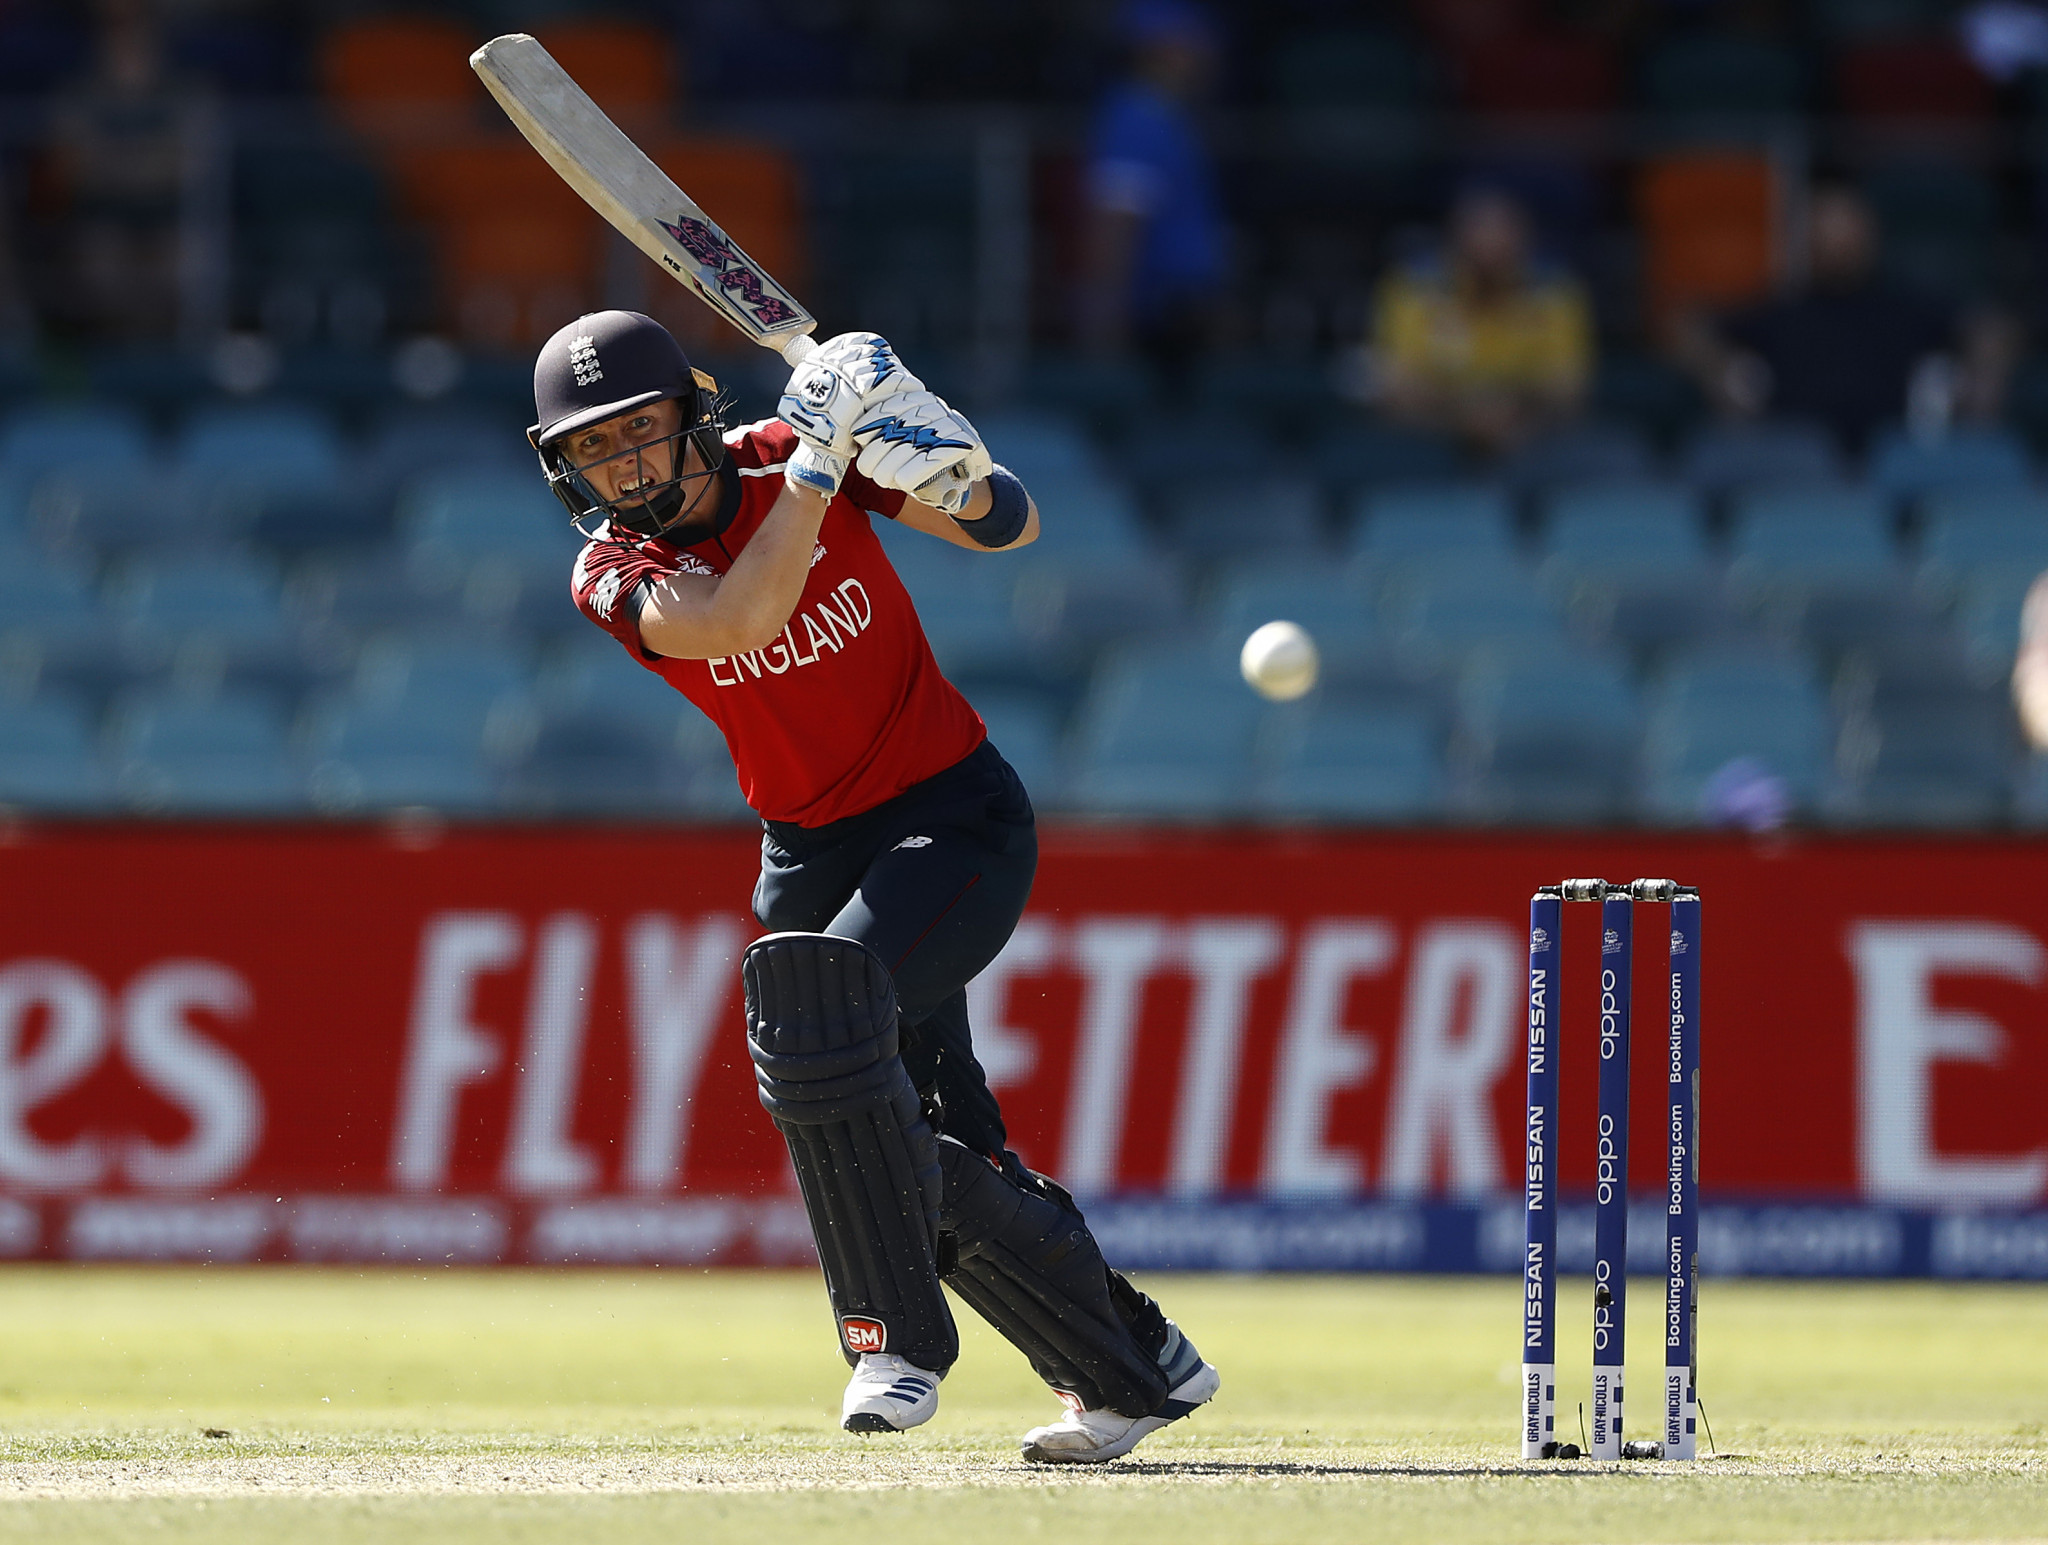 Knight century eases England to victory at Women's T20 World Cup